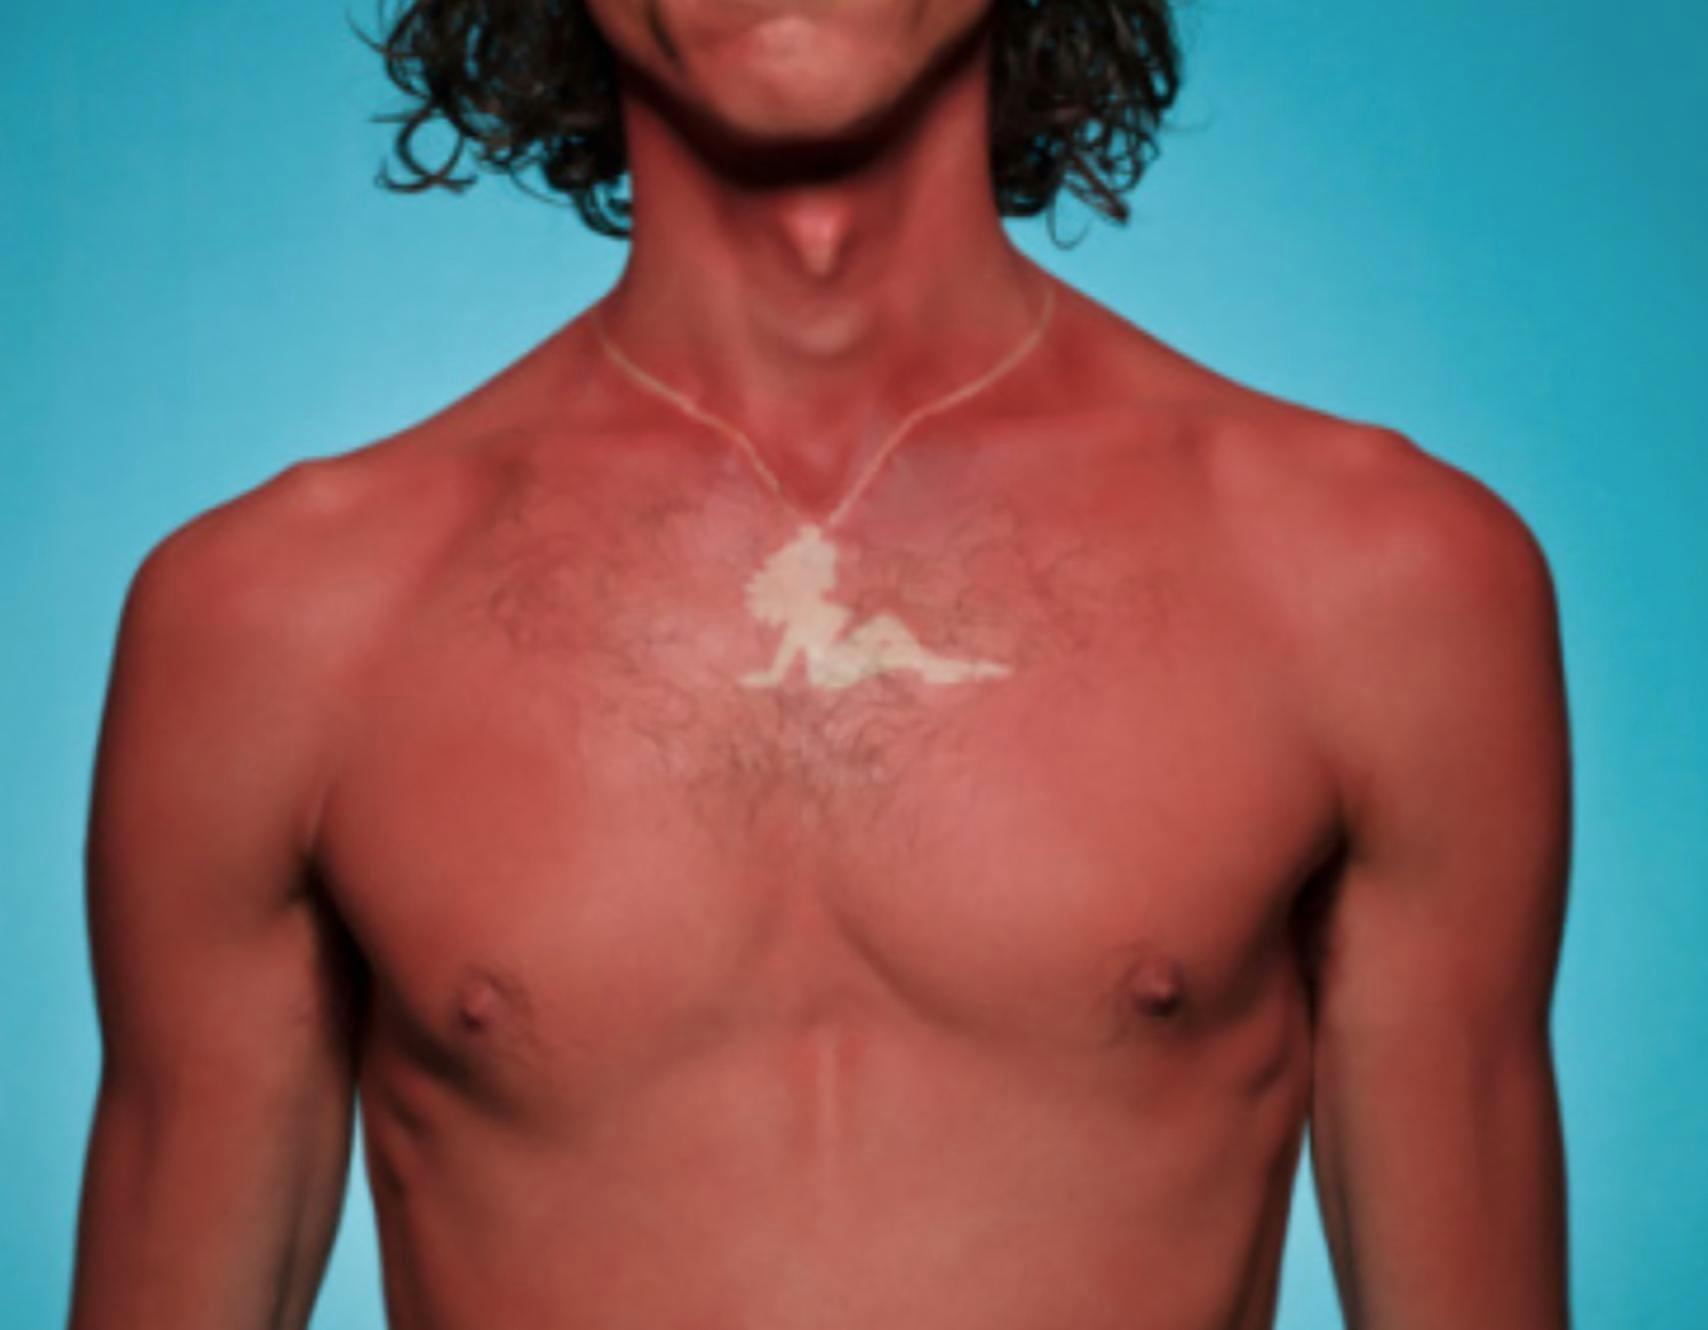 THE MOST EMBARRASSING AND WORST TAN LINES EVER